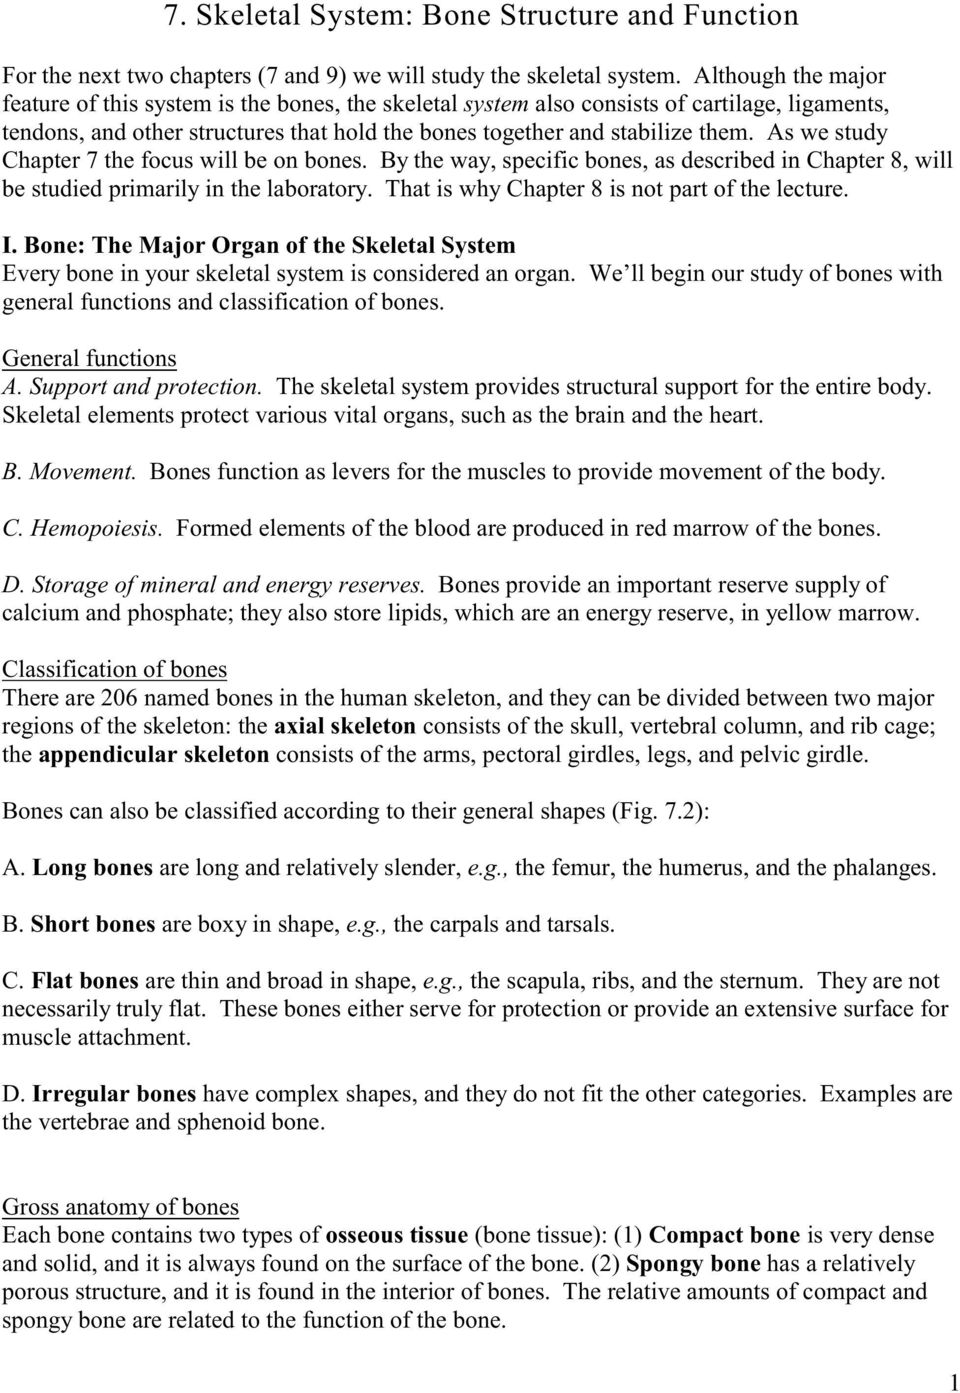 7 Skeletal System Bone Structure And Function Pdf